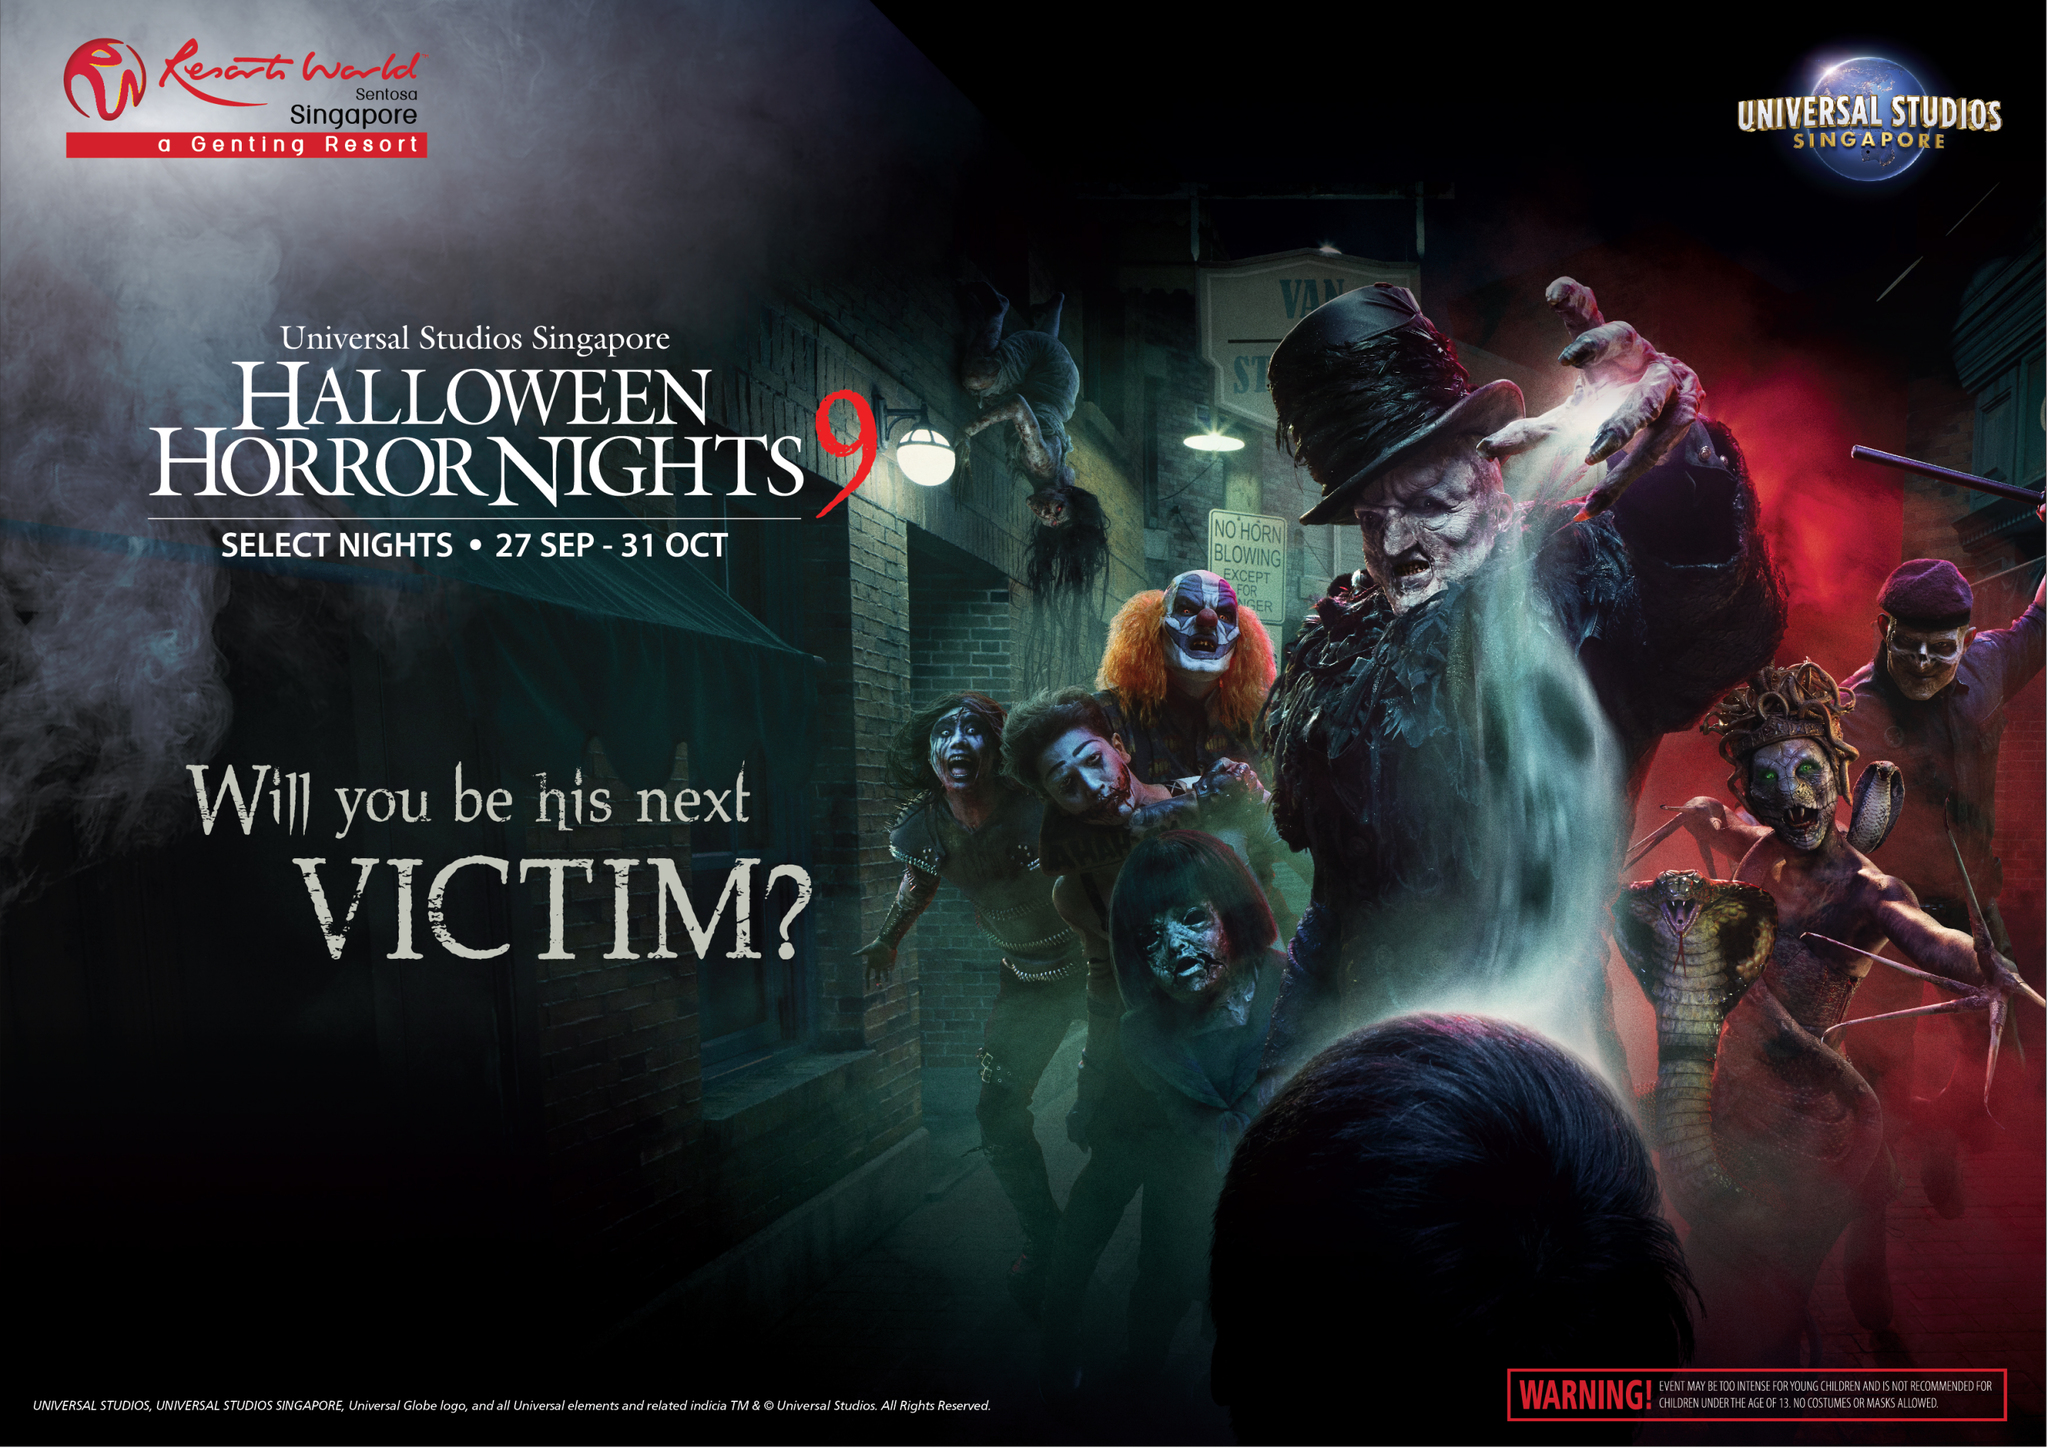 The poster for the annual HHN event organised by USS